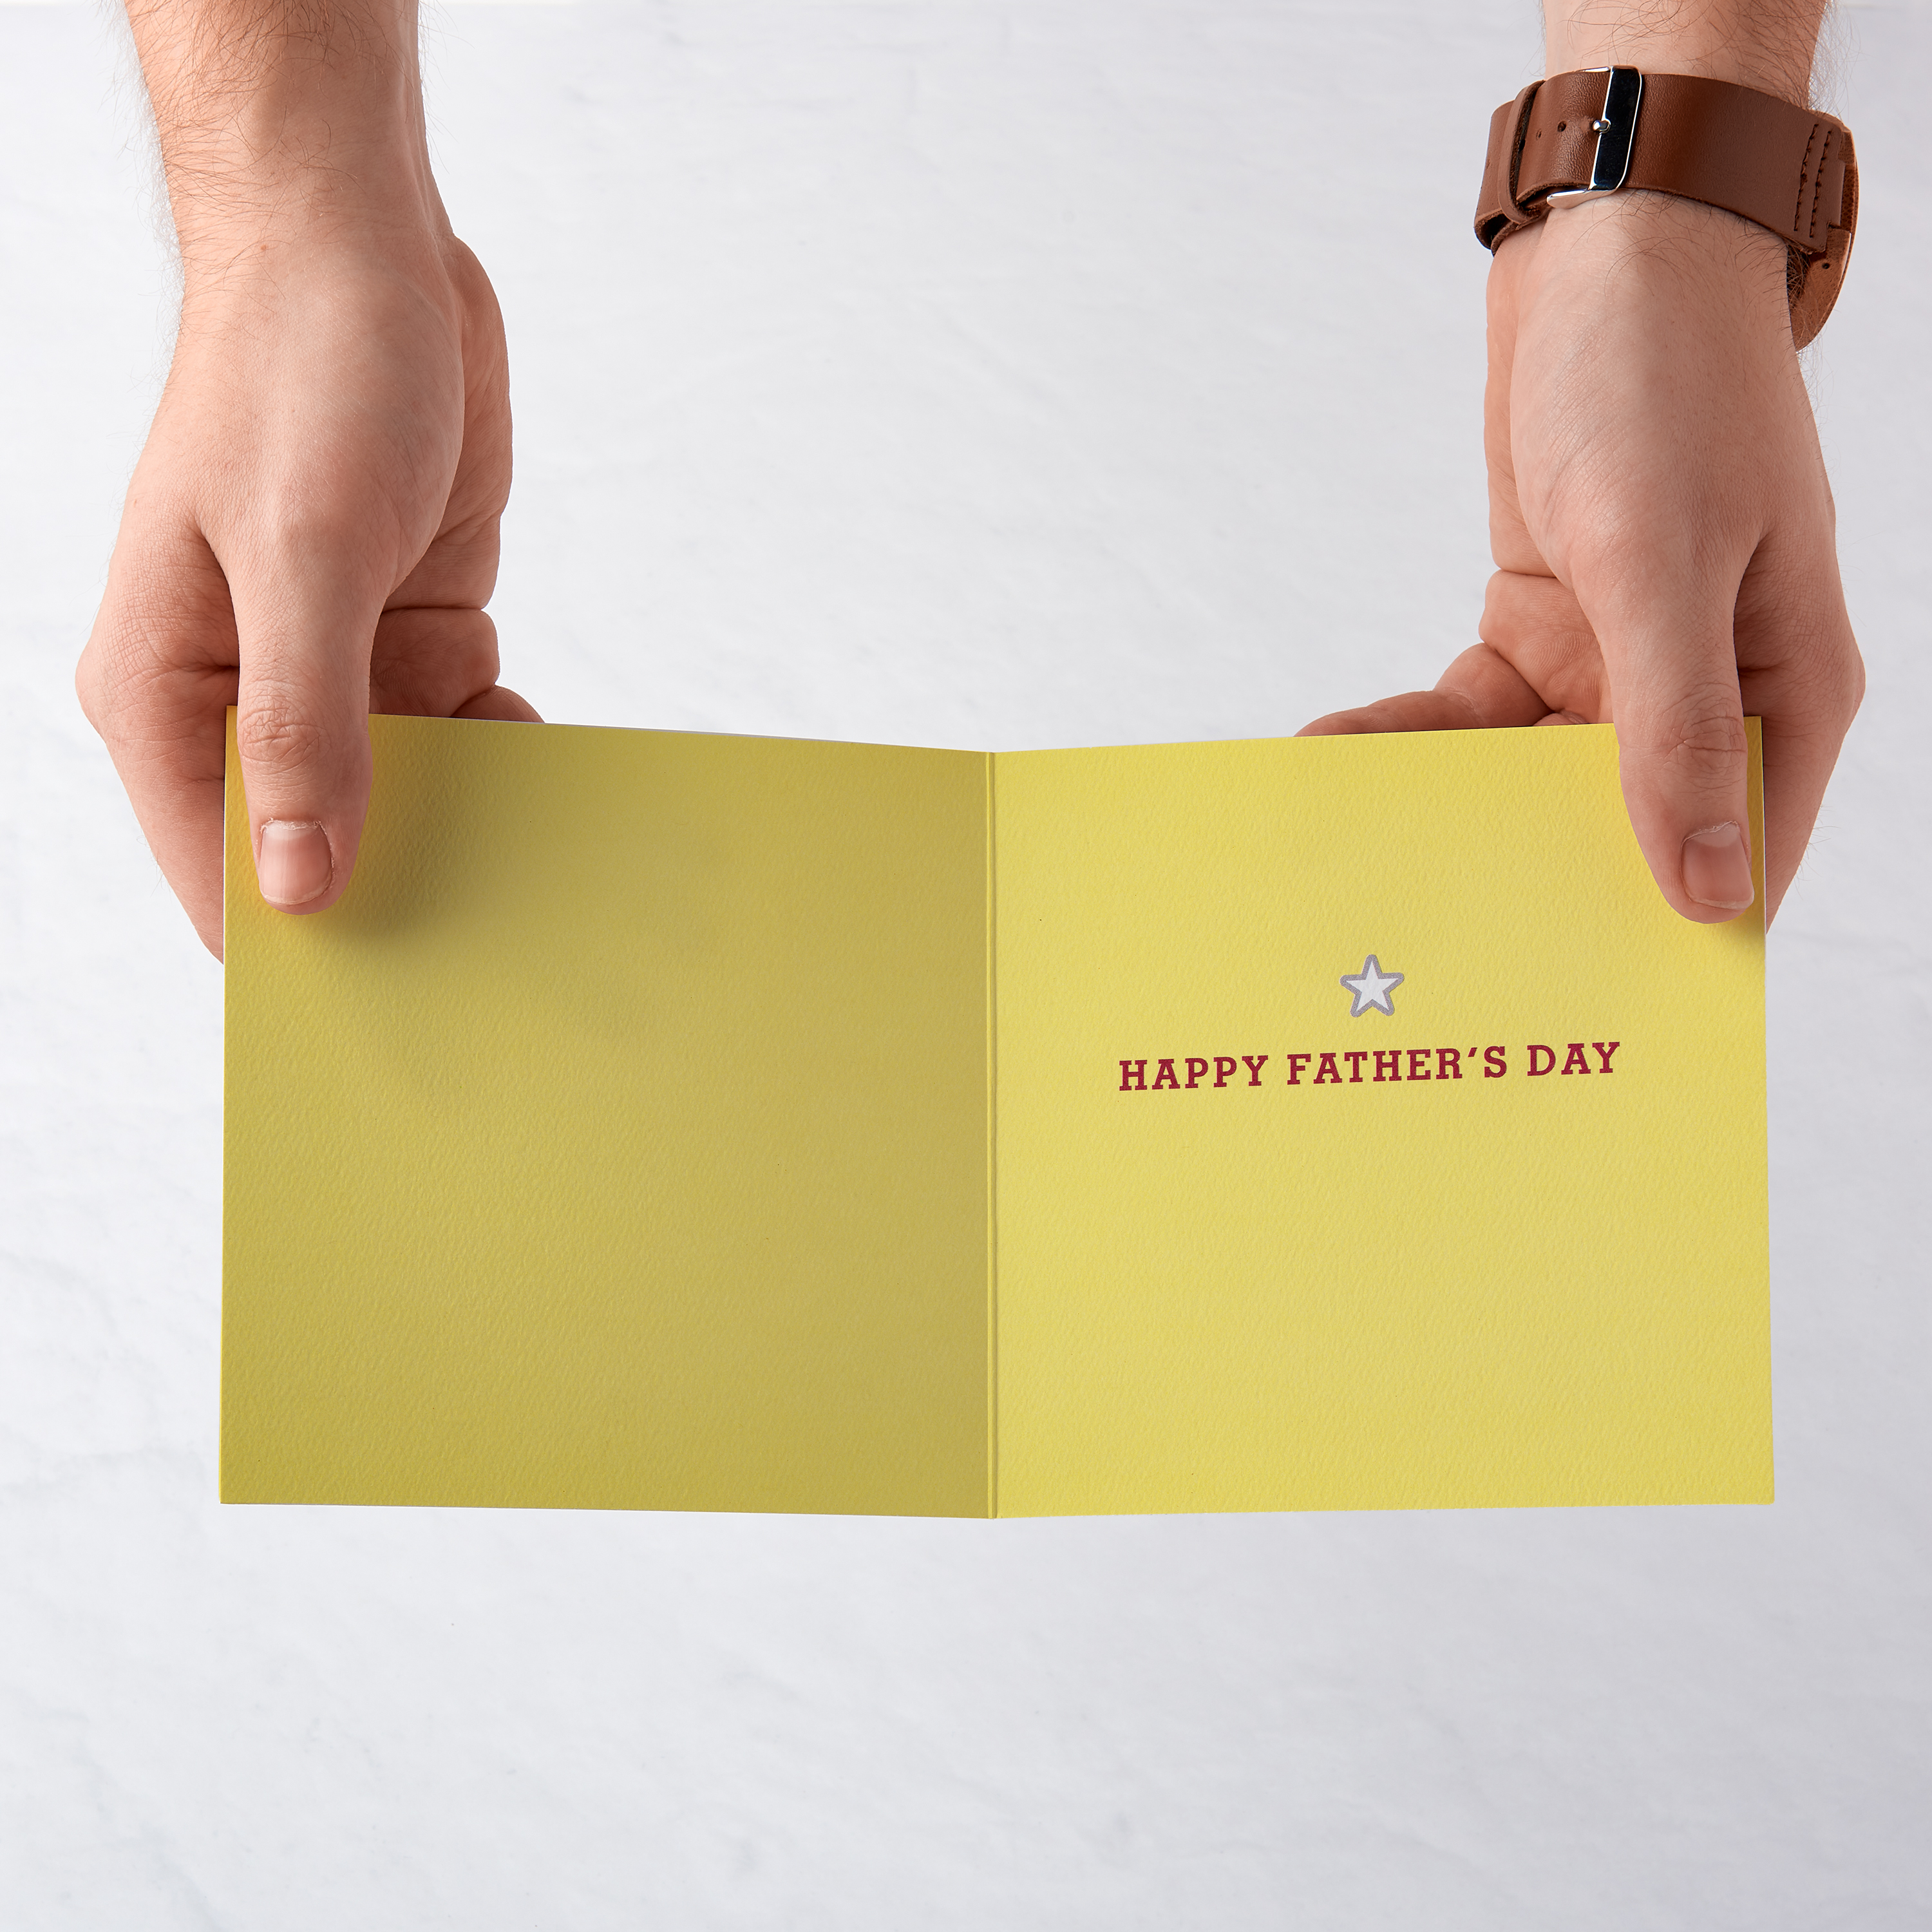 Well Done Father's Day Card image